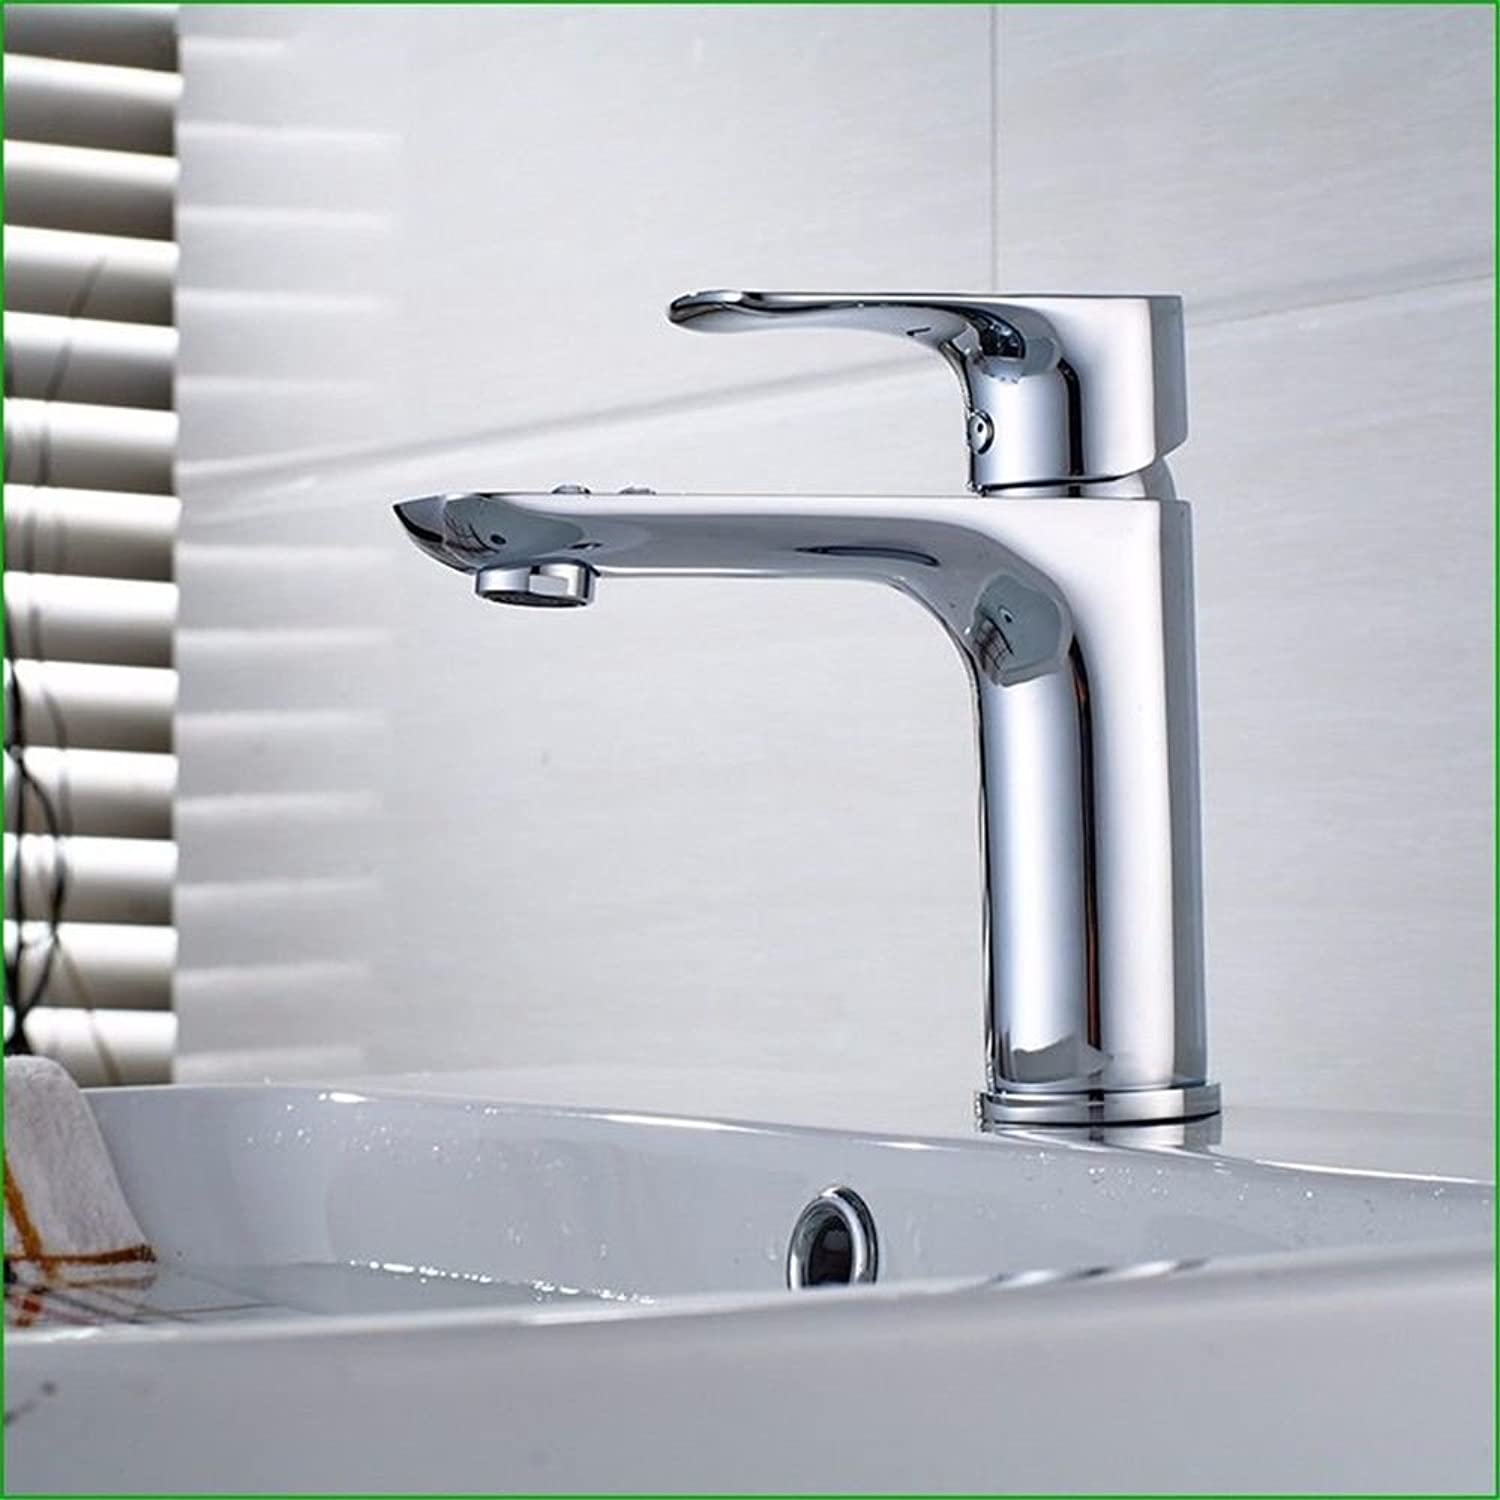 Lalaky Taps Faucet Kitchen Mixer Sink Waterfall Bathroom Mixer Basin Mixer Tap for Kitchen Bathroom and Washroom Copper Copper Main Body Hot and Cold Single Handle Single Hole